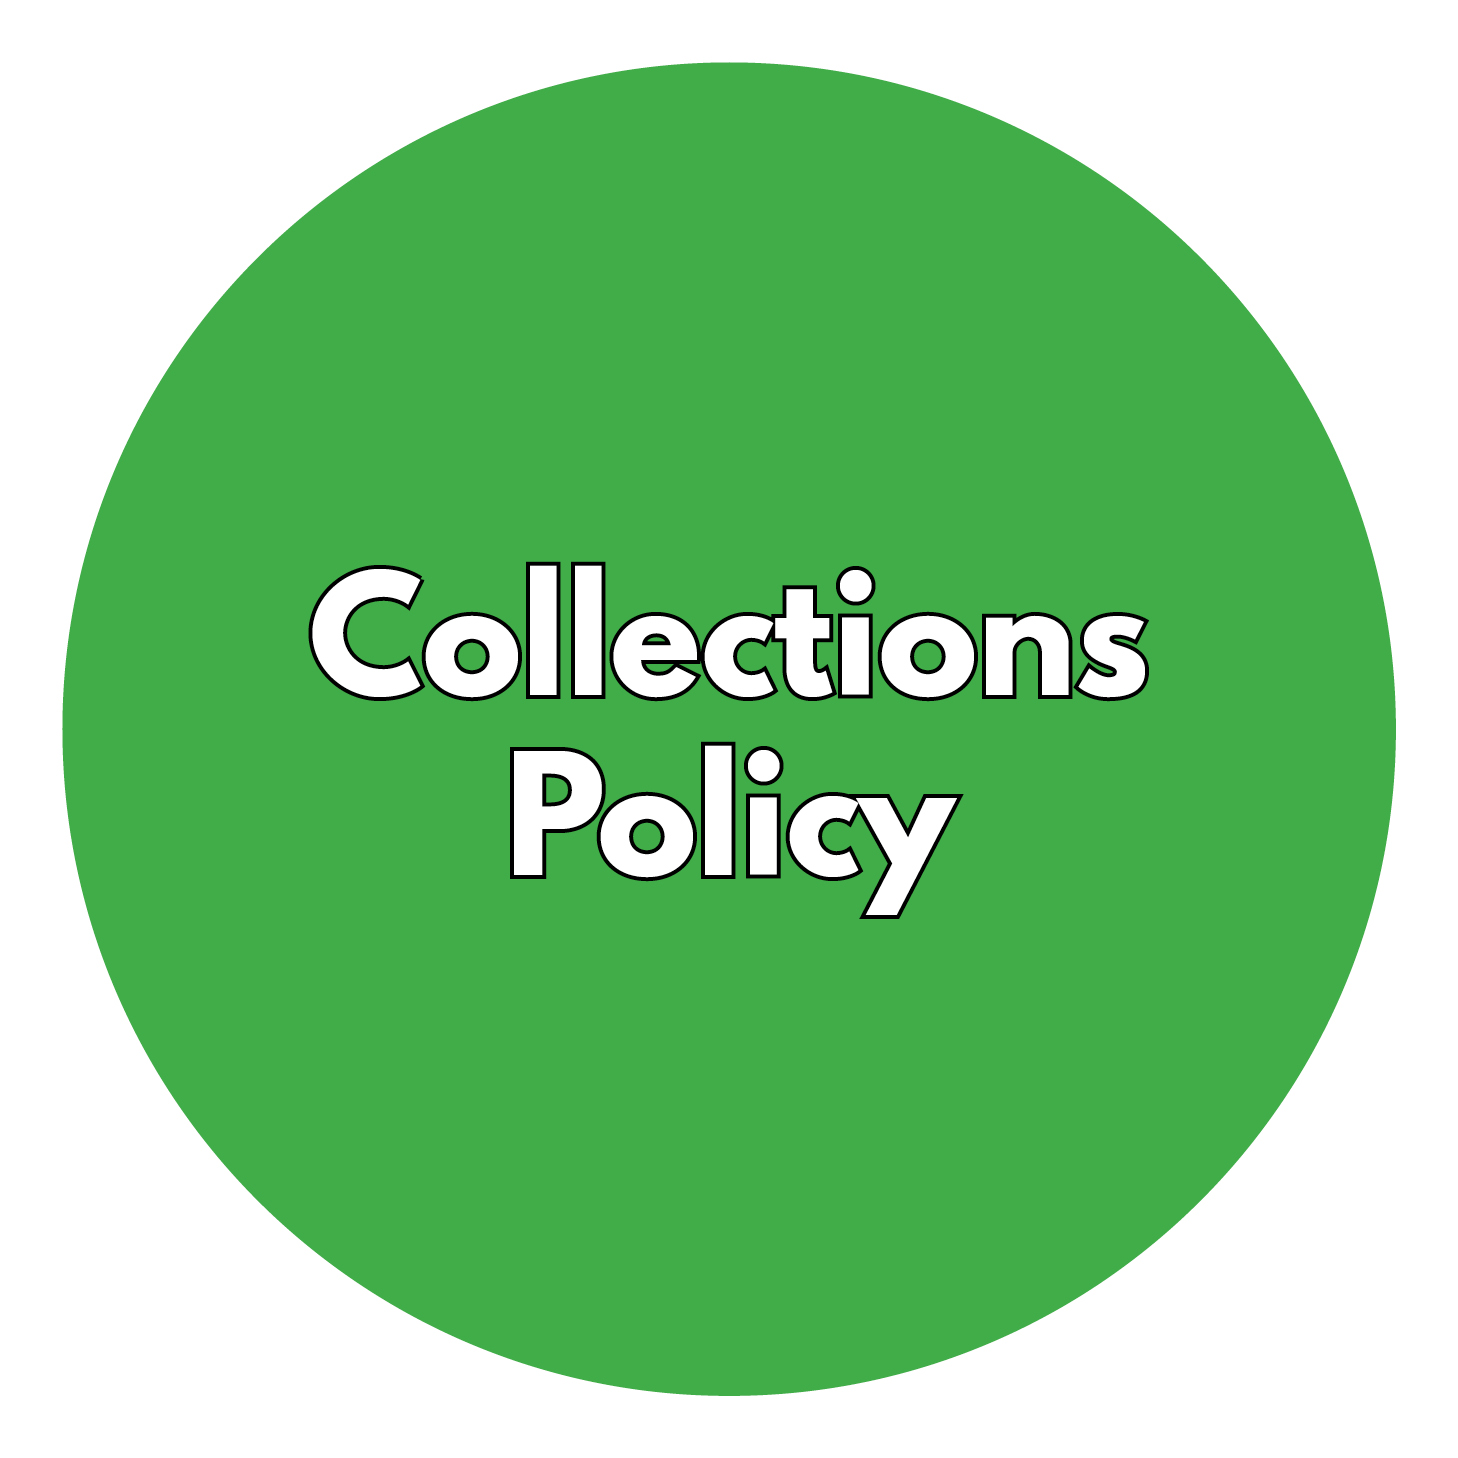 collections policy.jpg